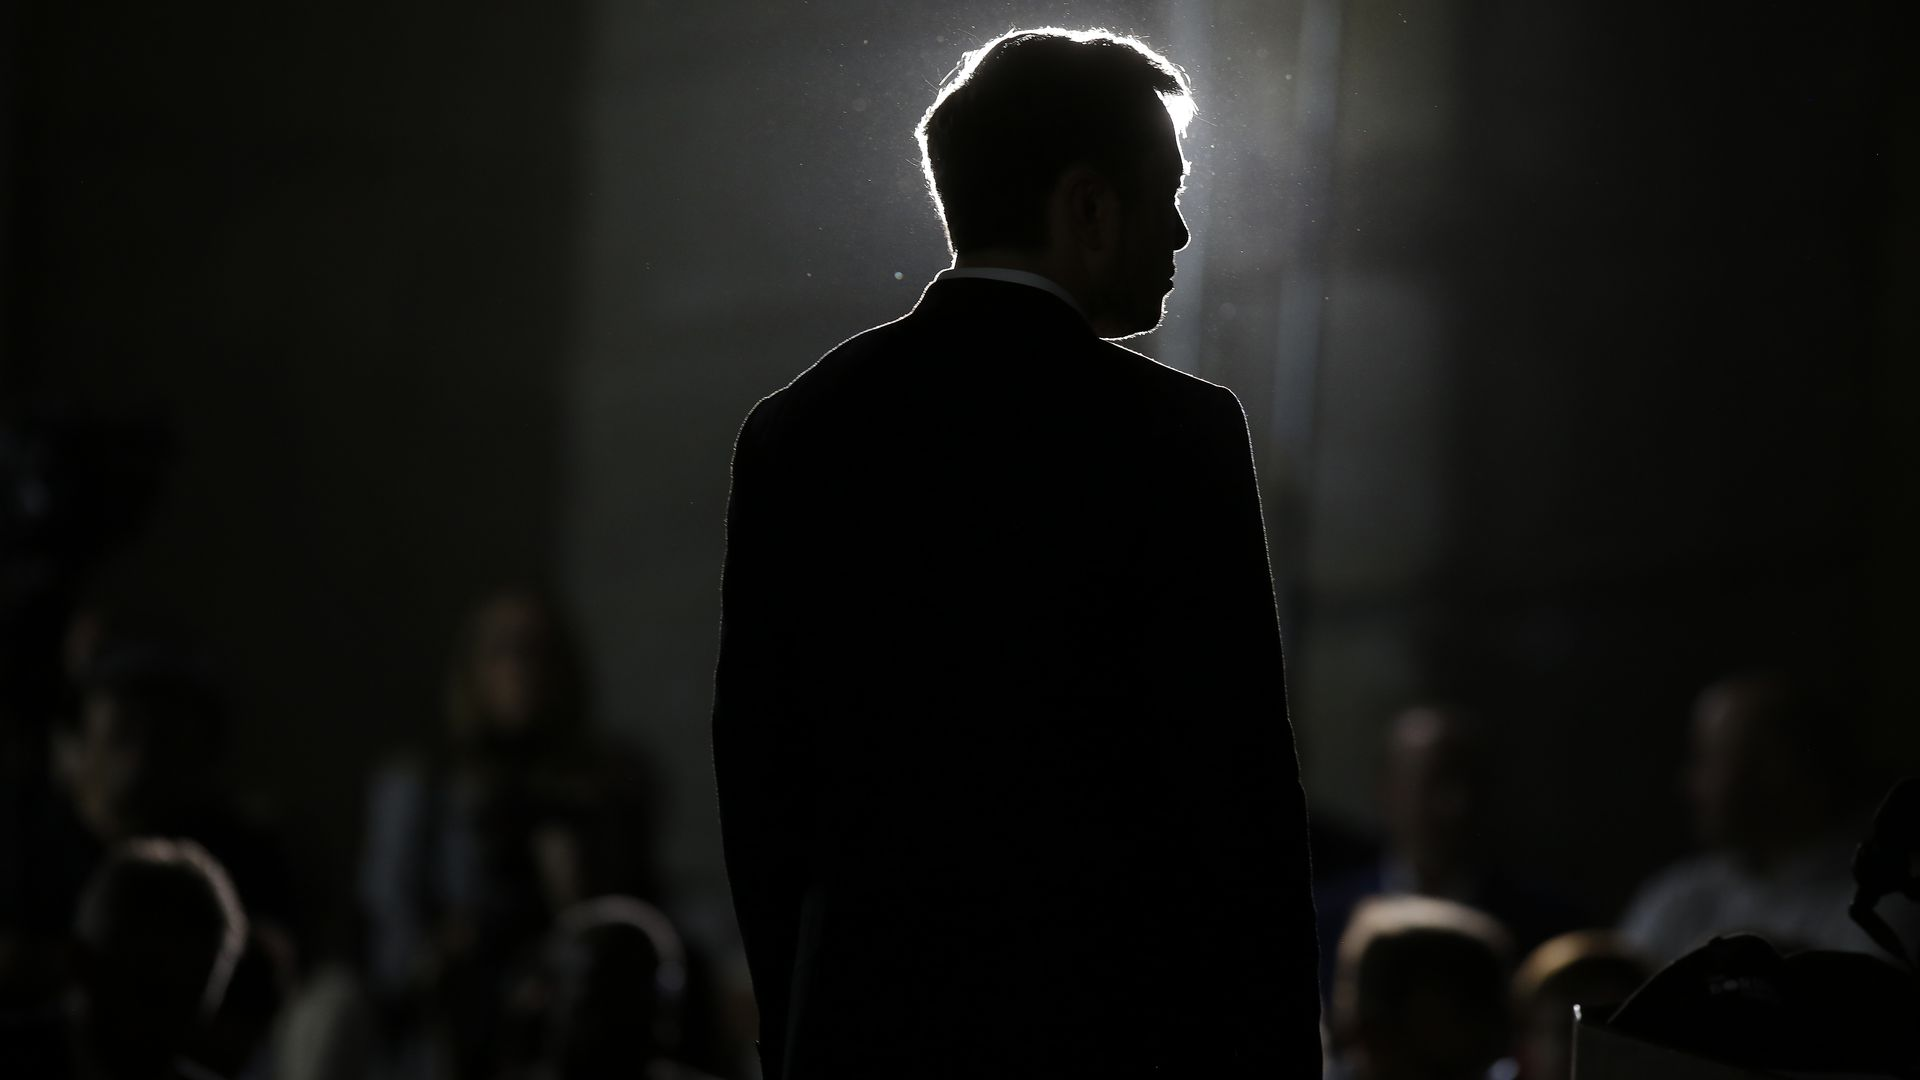 A dark image with the dark silhouette of Elon Musk